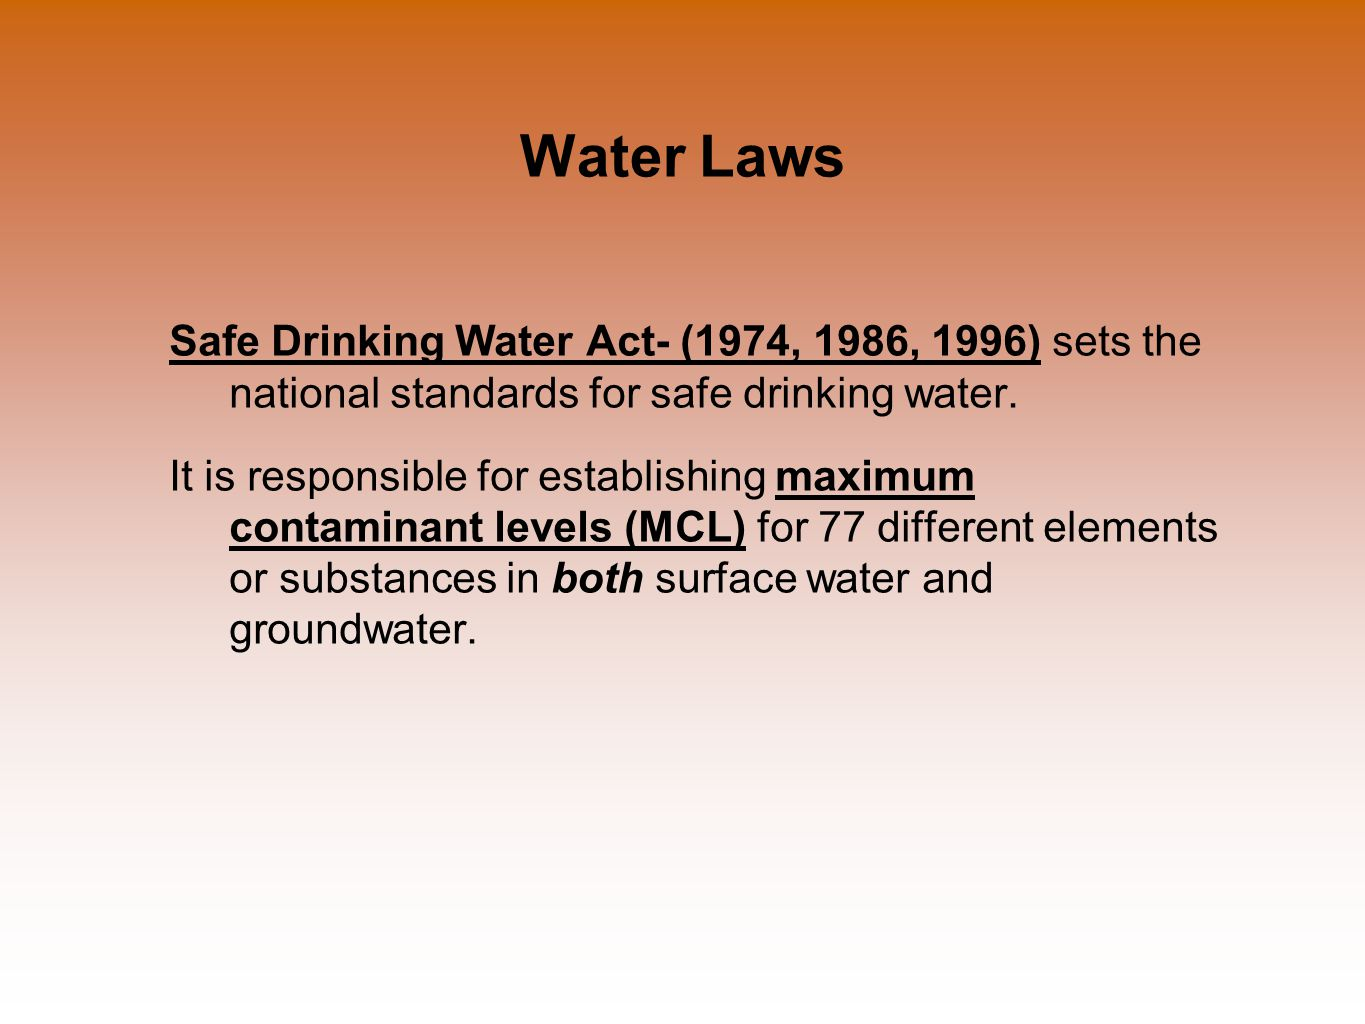 Water Laws Safe Drinking Water Act- (1974, 1986, 1996) sets the national standards for safe drinking water. It is responsible for establishing maximum